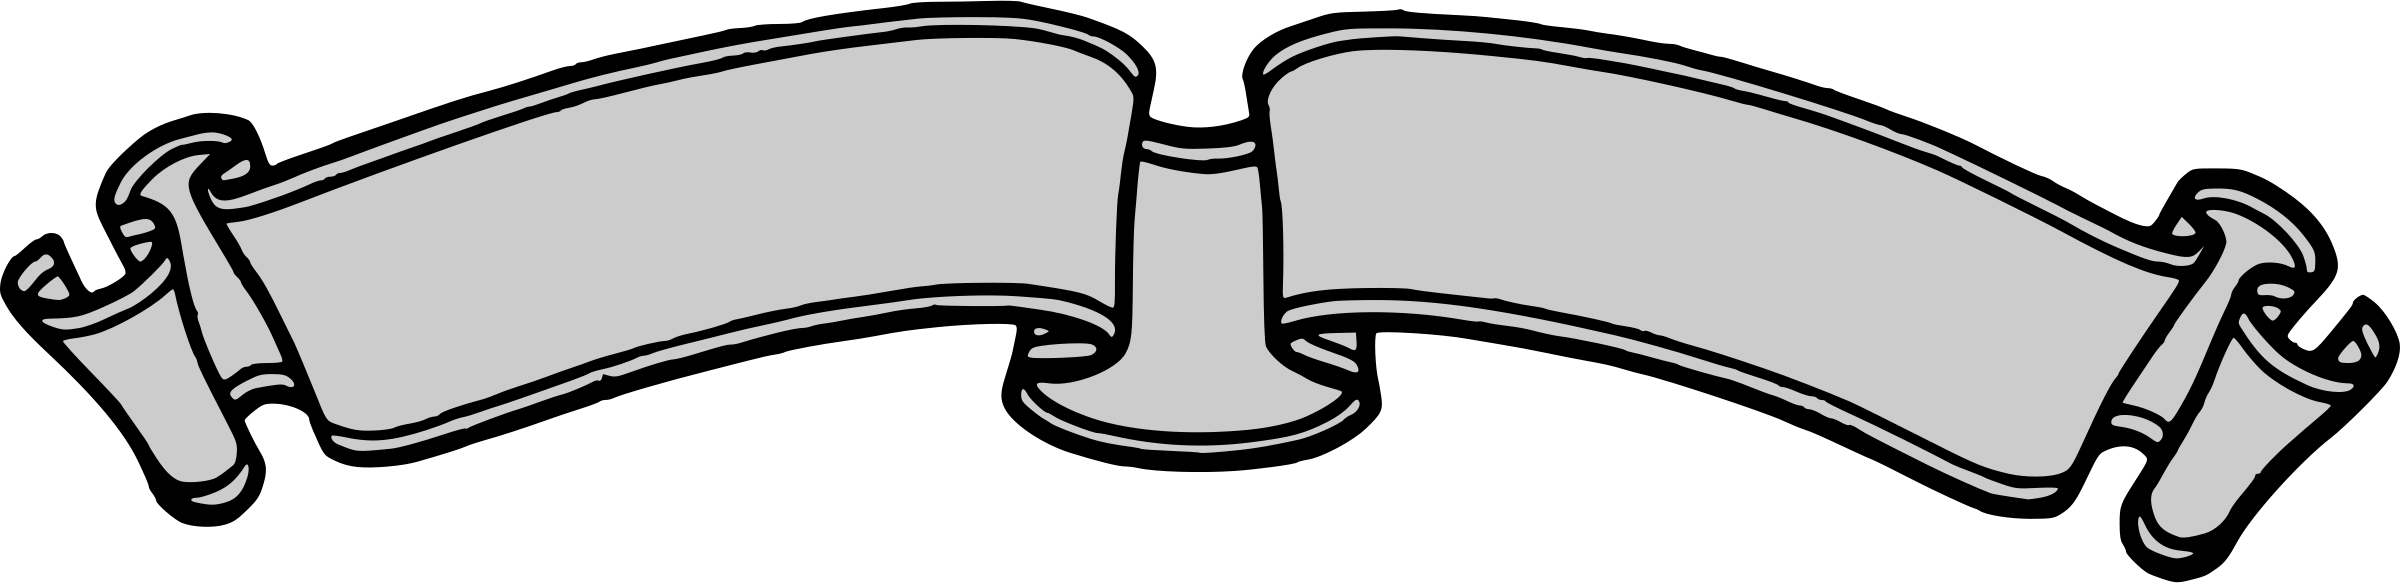 banner clipart black and white png #11